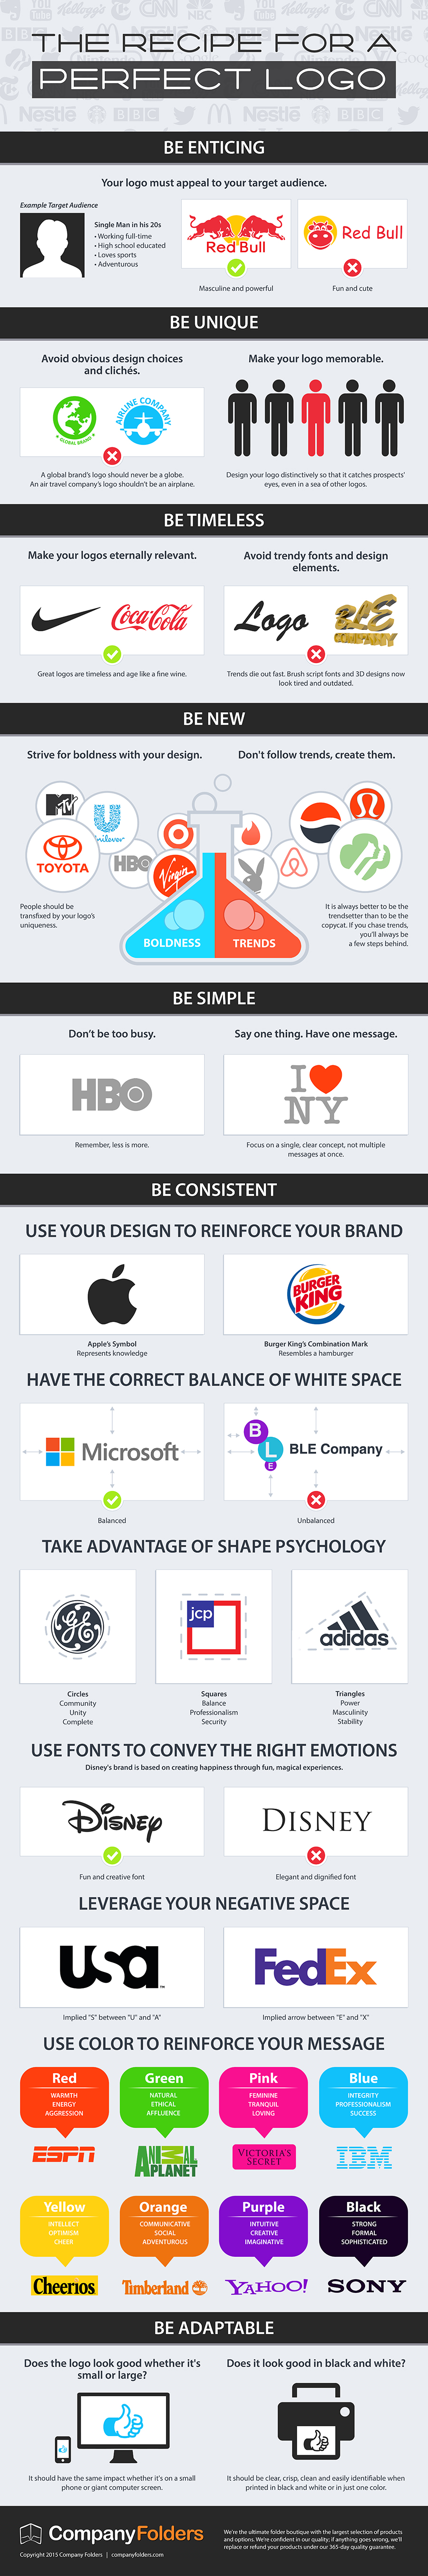 creating-a-logo-for-your-business